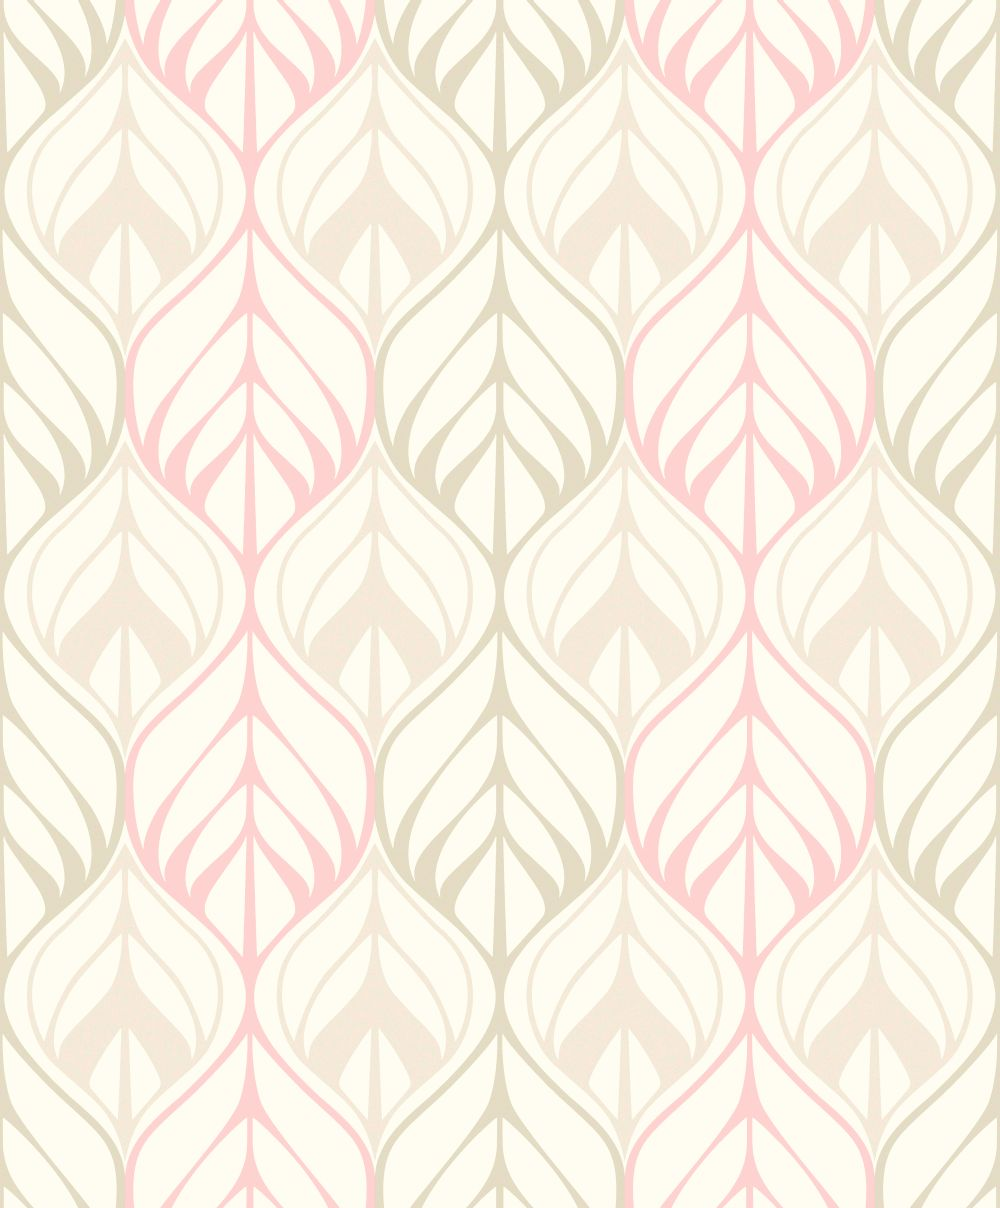 Galerie Leaf Trail Pale Pink Wallpaper Main Image